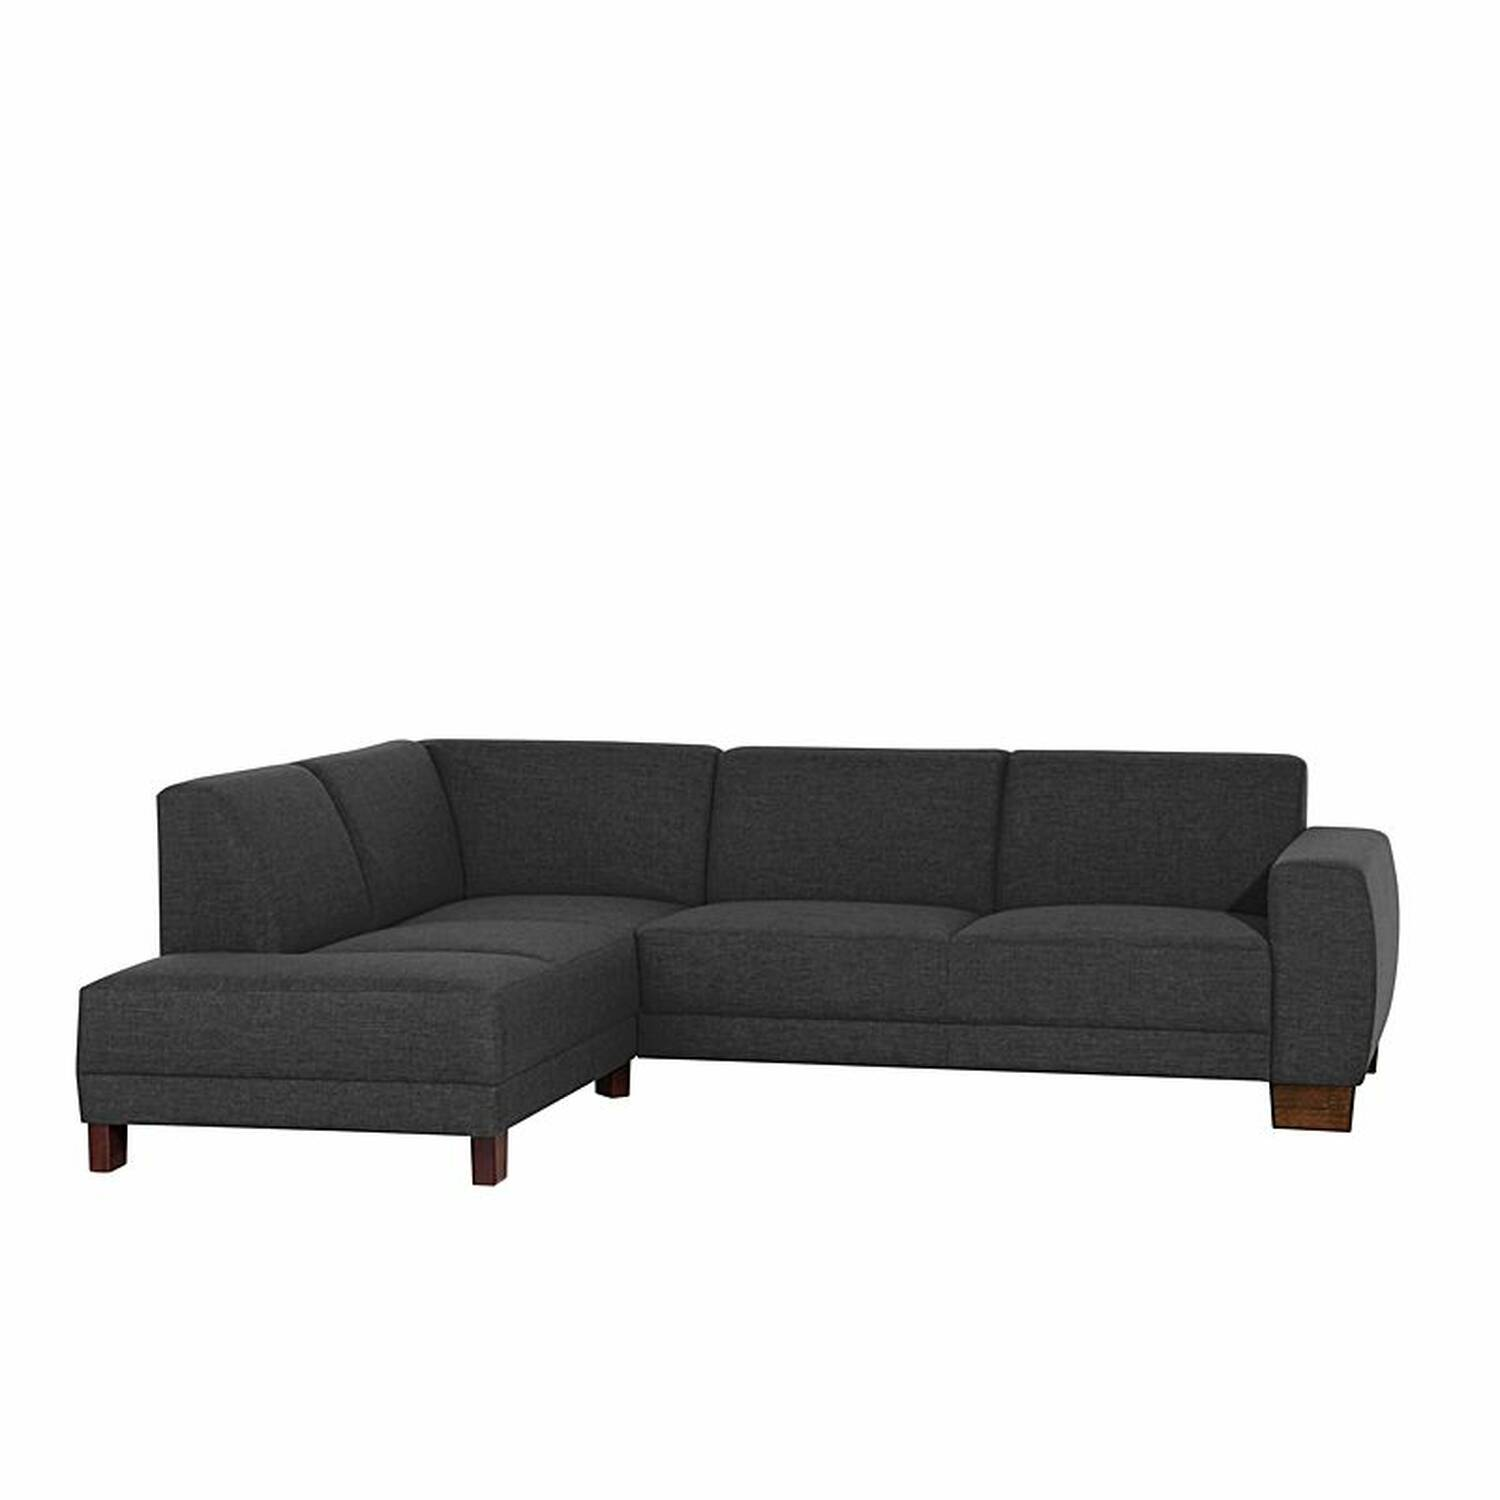 ecksofa links mit sofa 2 5 sitzer rechts blackpool 23. Black Bedroom Furniture Sets. Home Design Ideas